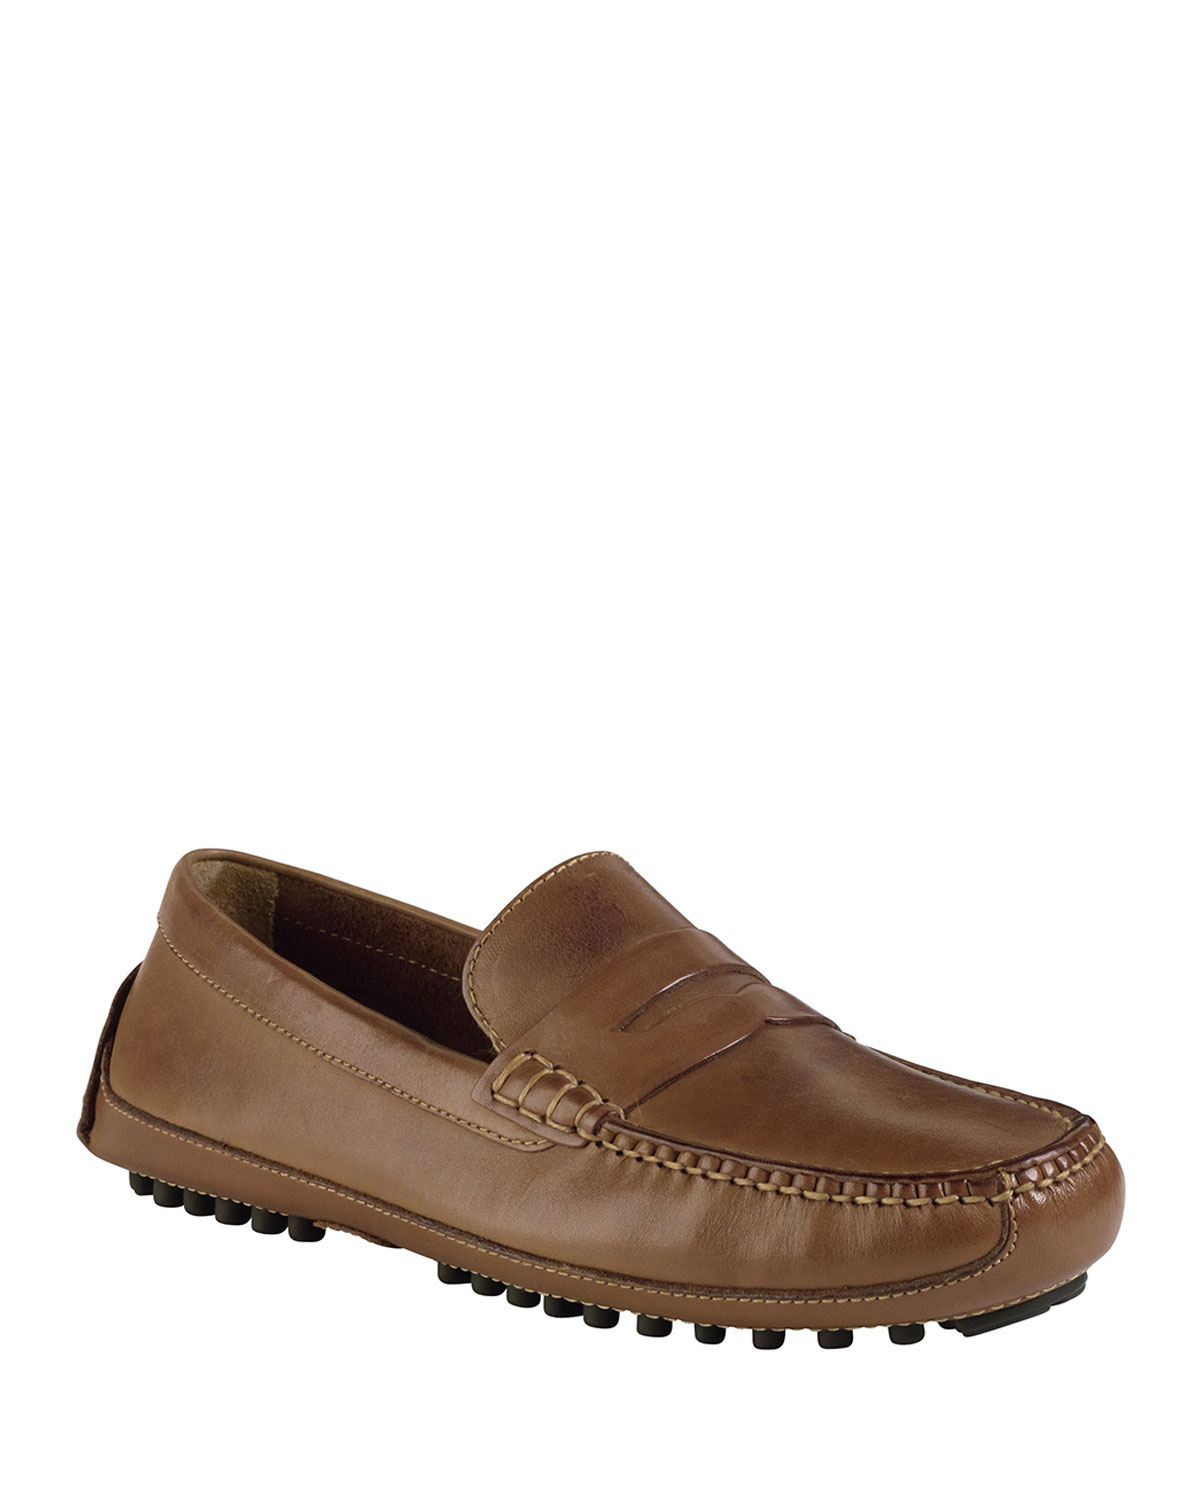 Cole Haan Grant Canoe Penny Loafer, Brown